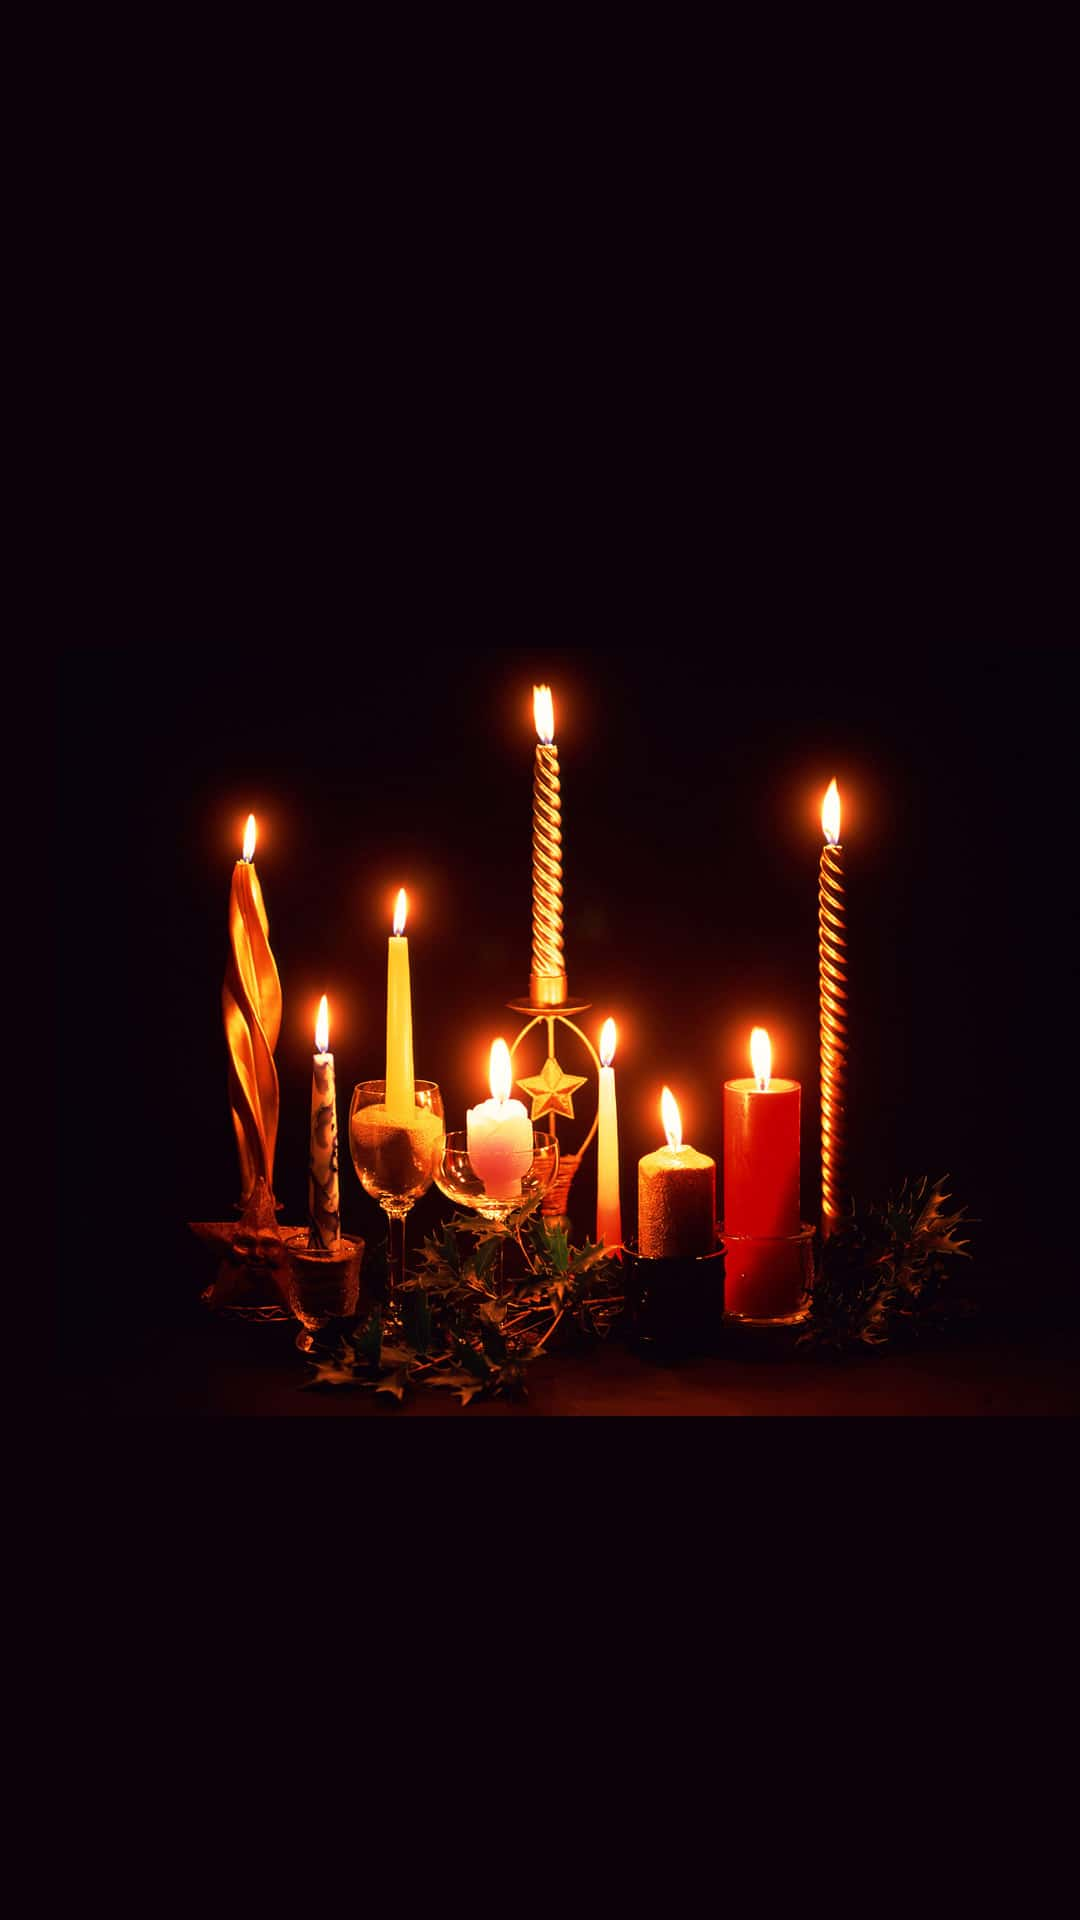 Variety Christmas Candles Android Wallpaper